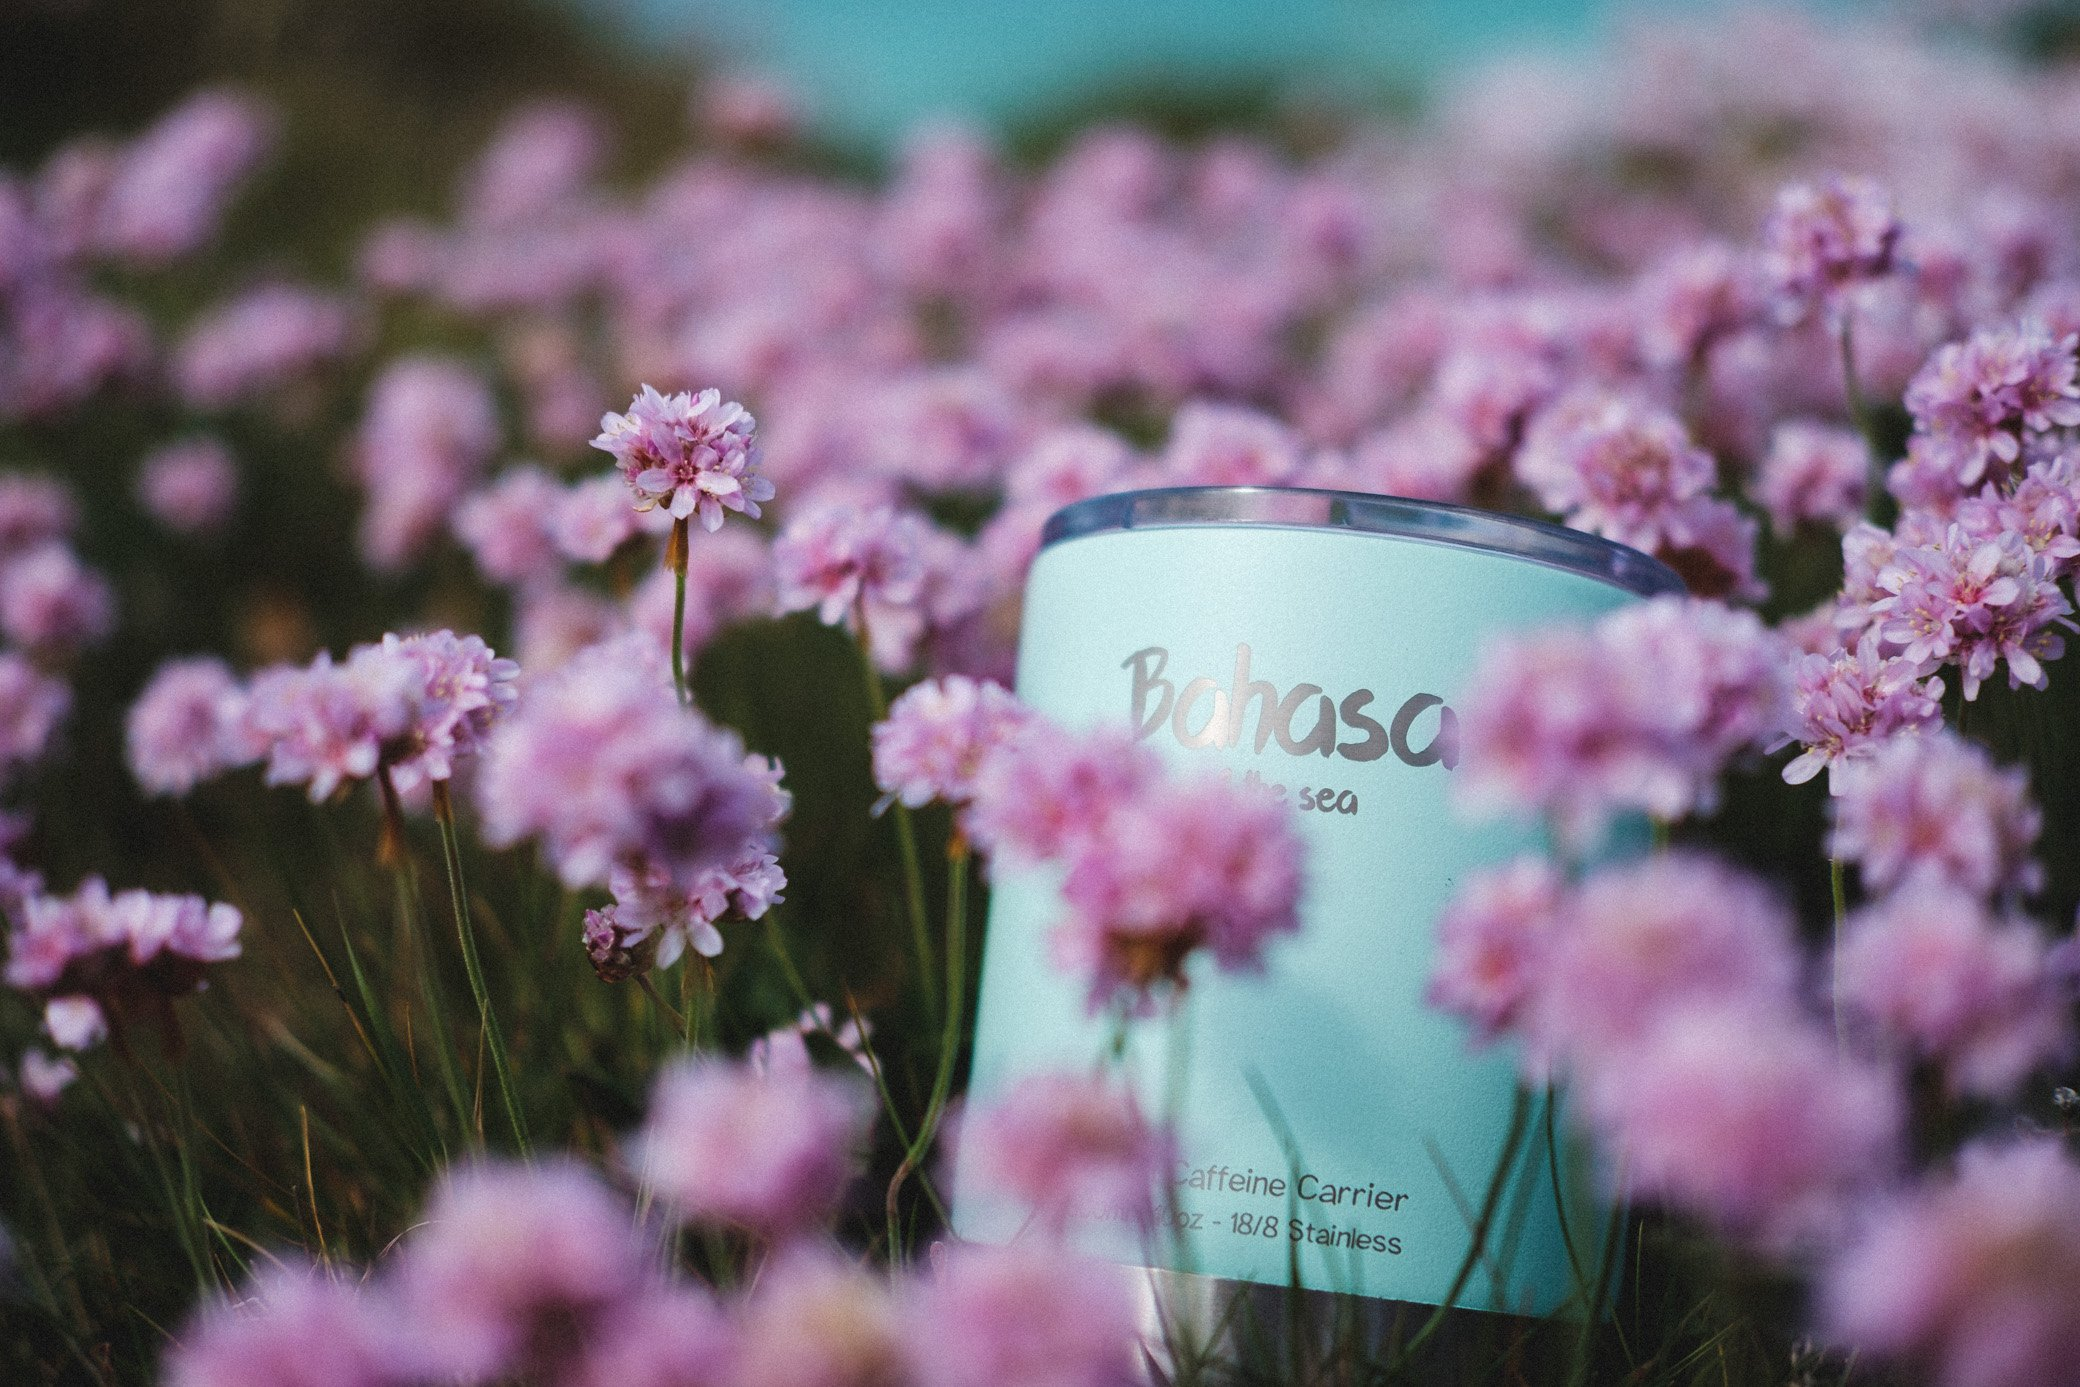 Bahasa cup in flowers